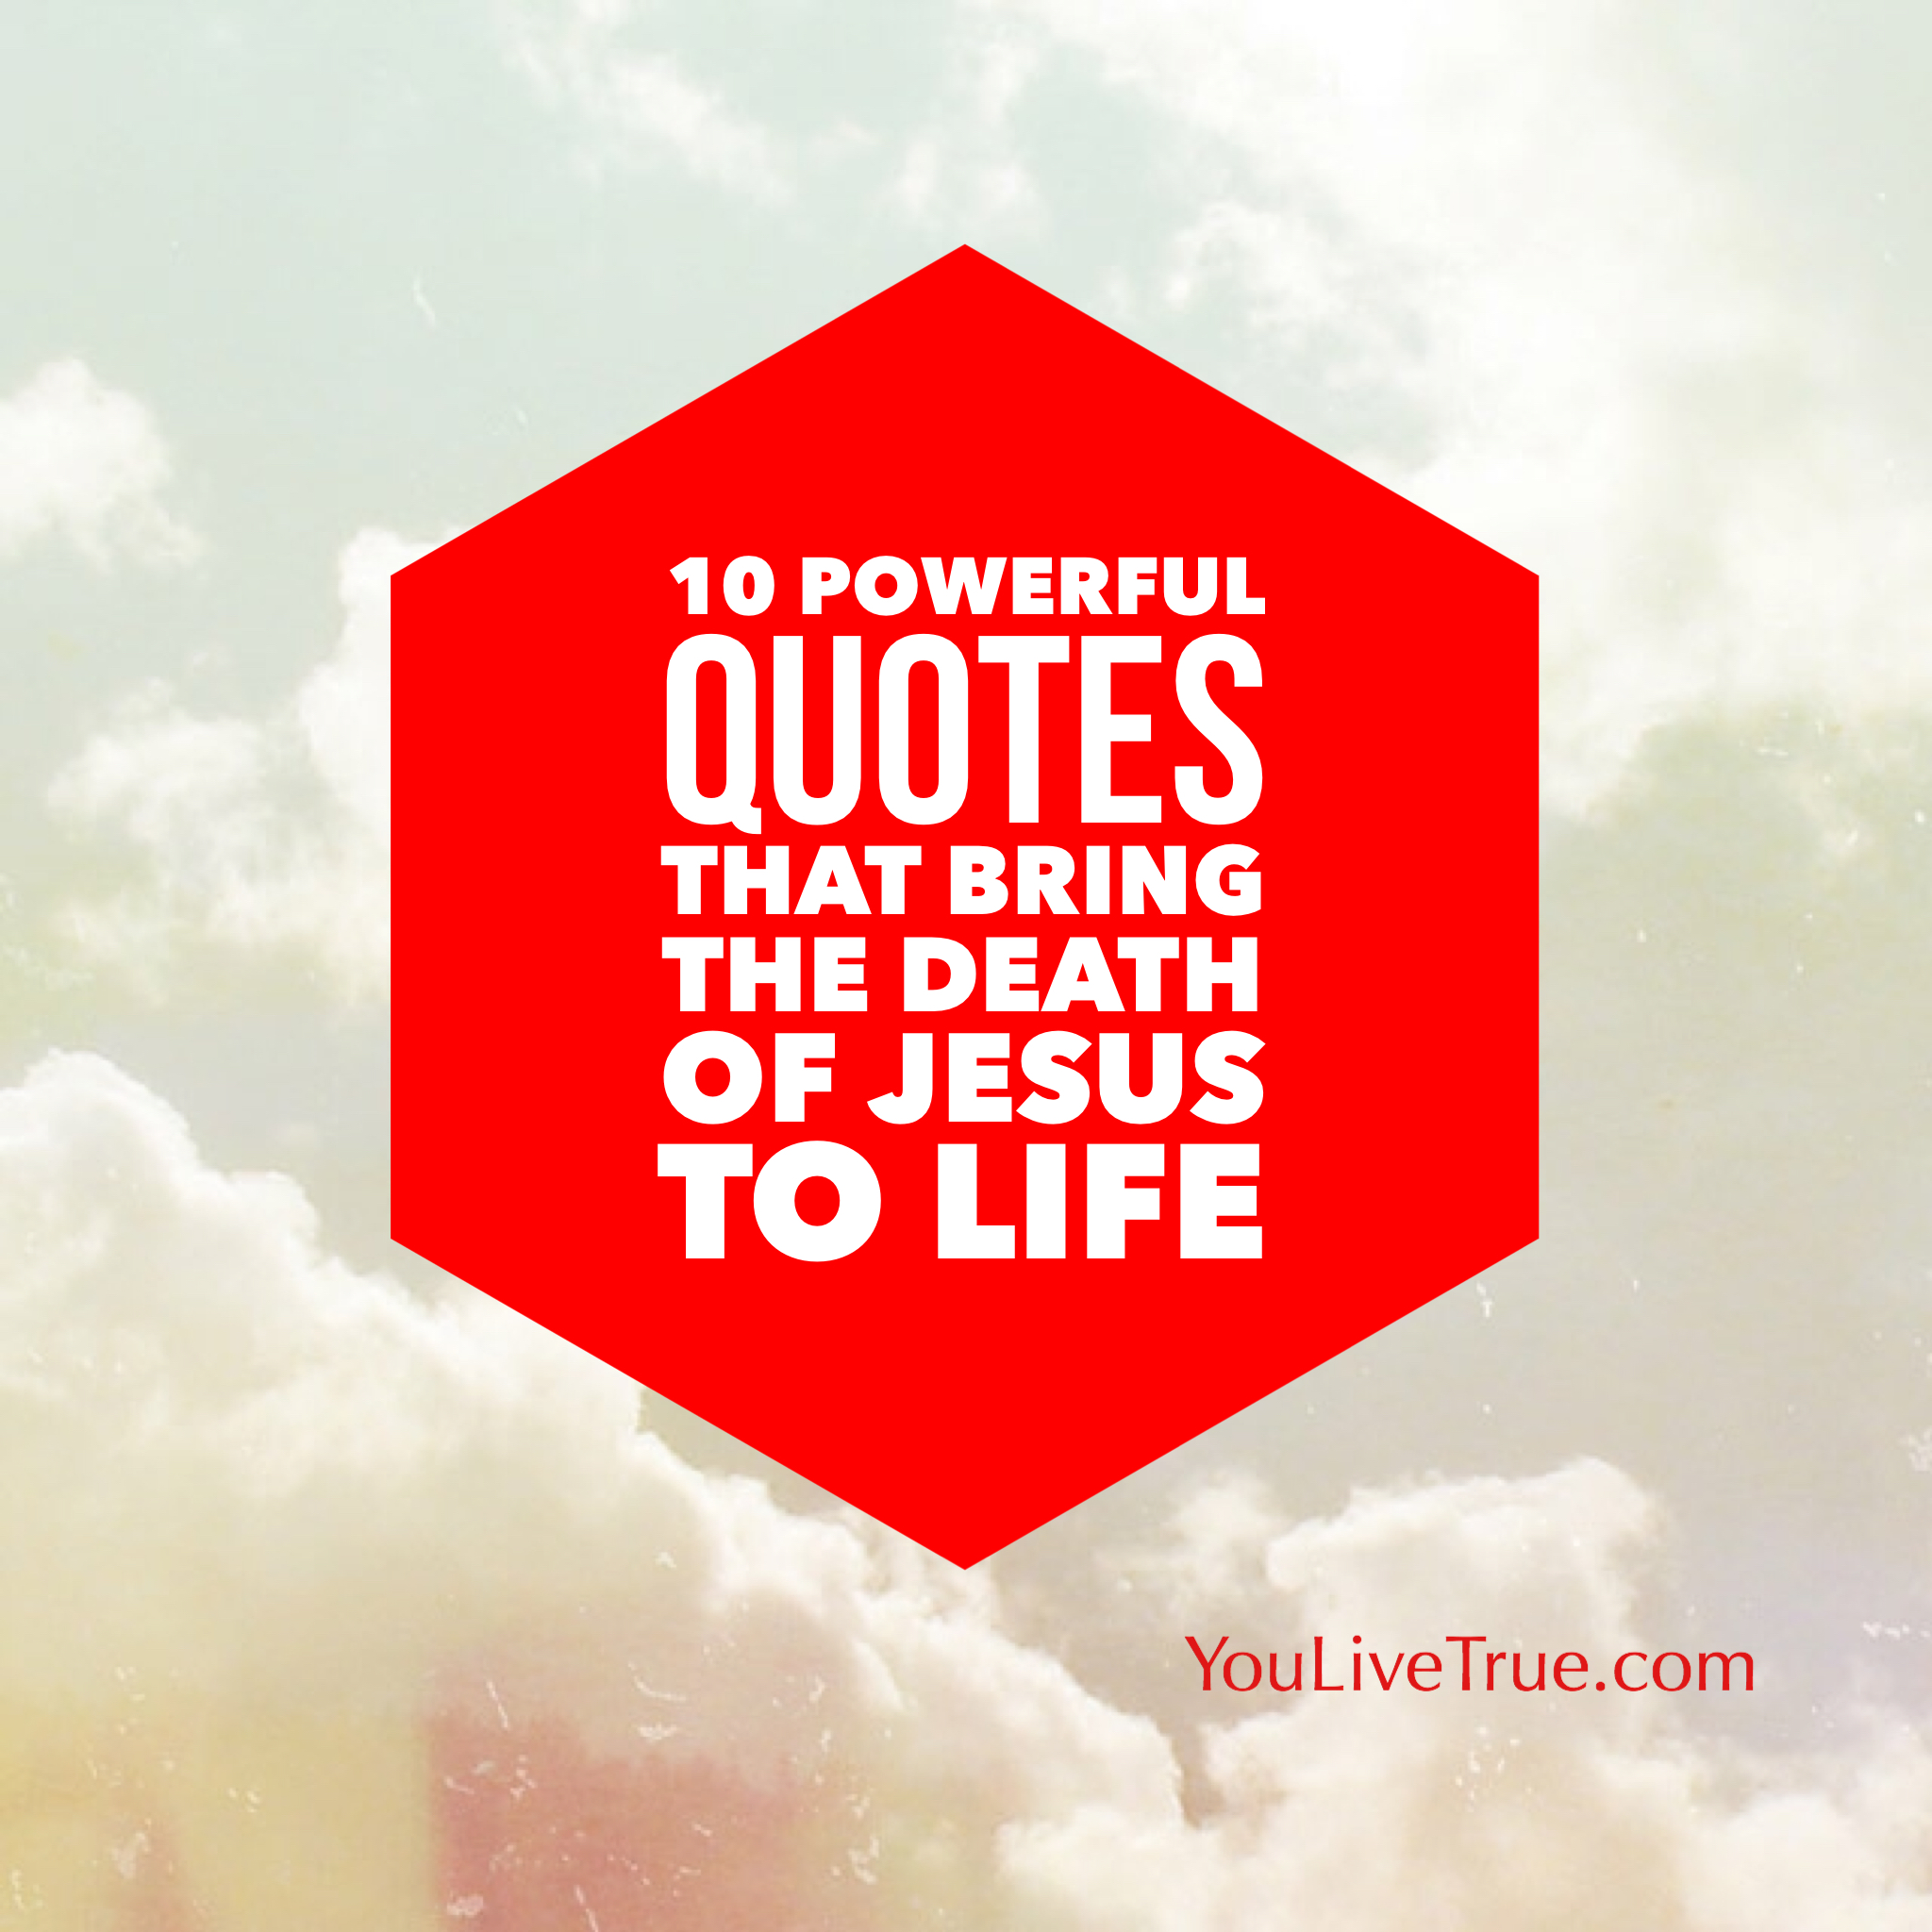 Some Good Quotes On Life 10 Powerful Quotes That Bring Life To The Death Of Jesus  Live True